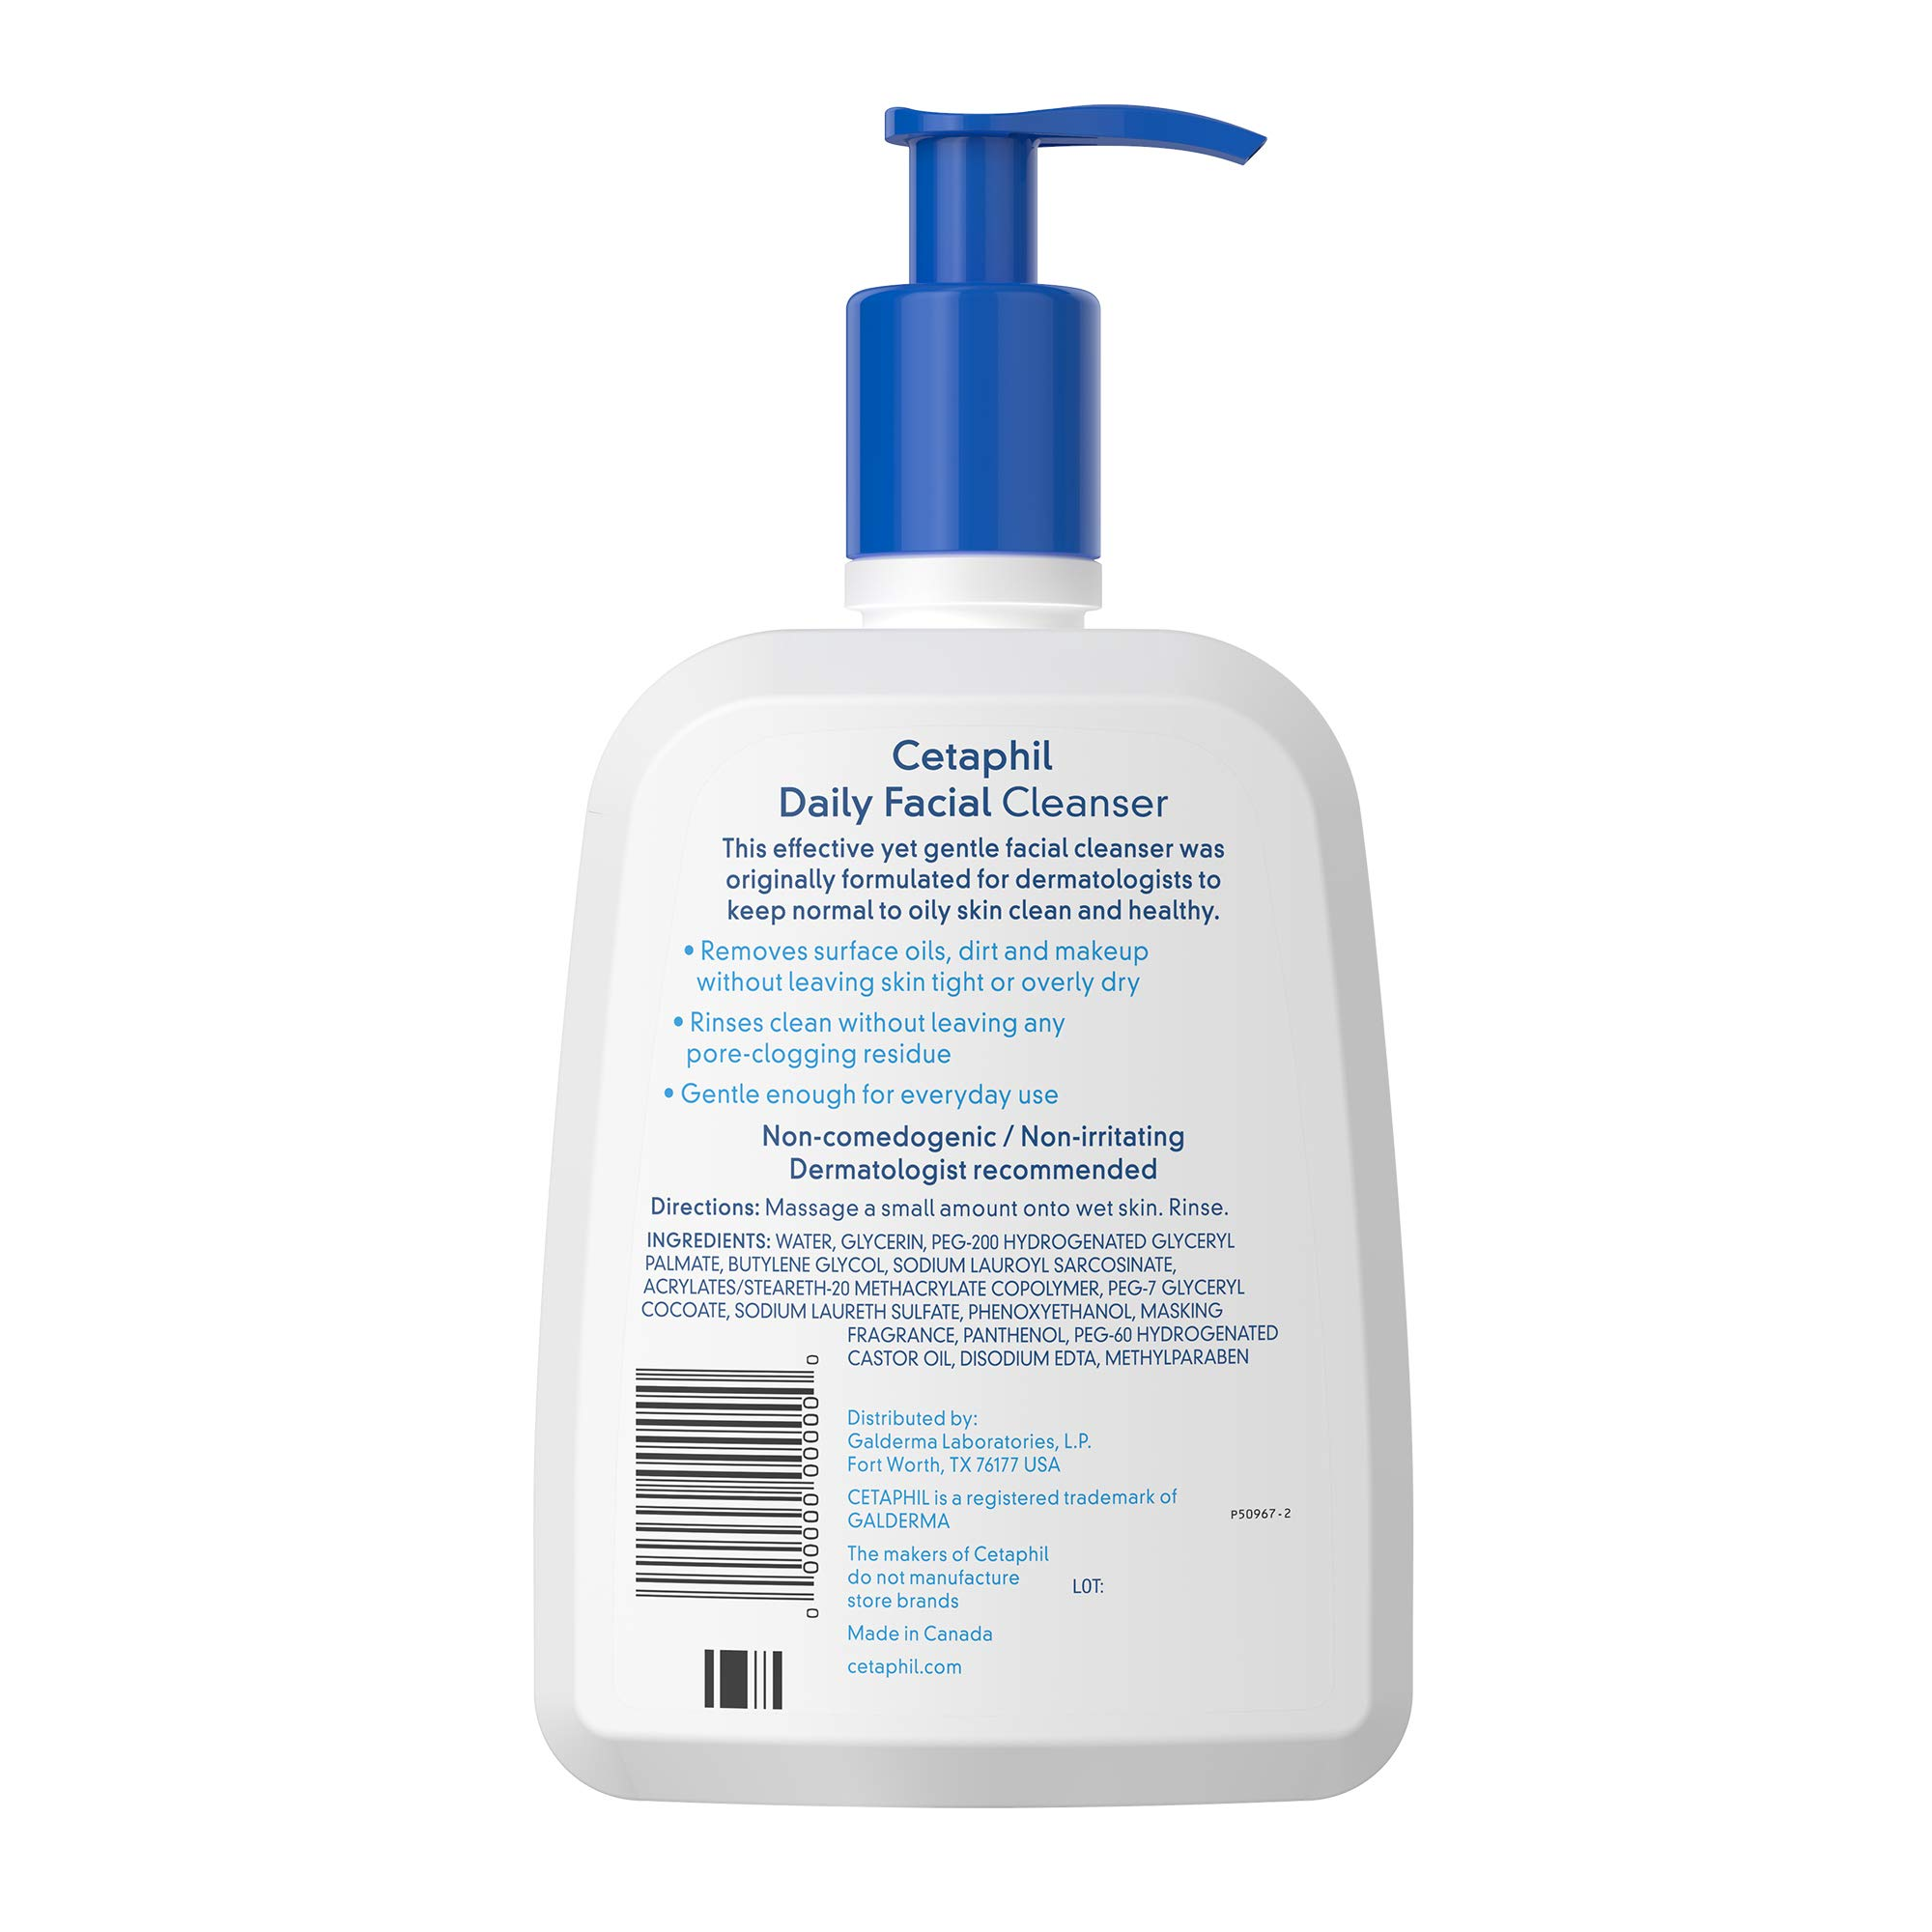 Face Wash by Cetaphil, Daily Facial Cleanser for Combination to Oily Sensitive Skin, 16 oz Pack of 2, Gentle Foaming Deep Clean Without Stripping